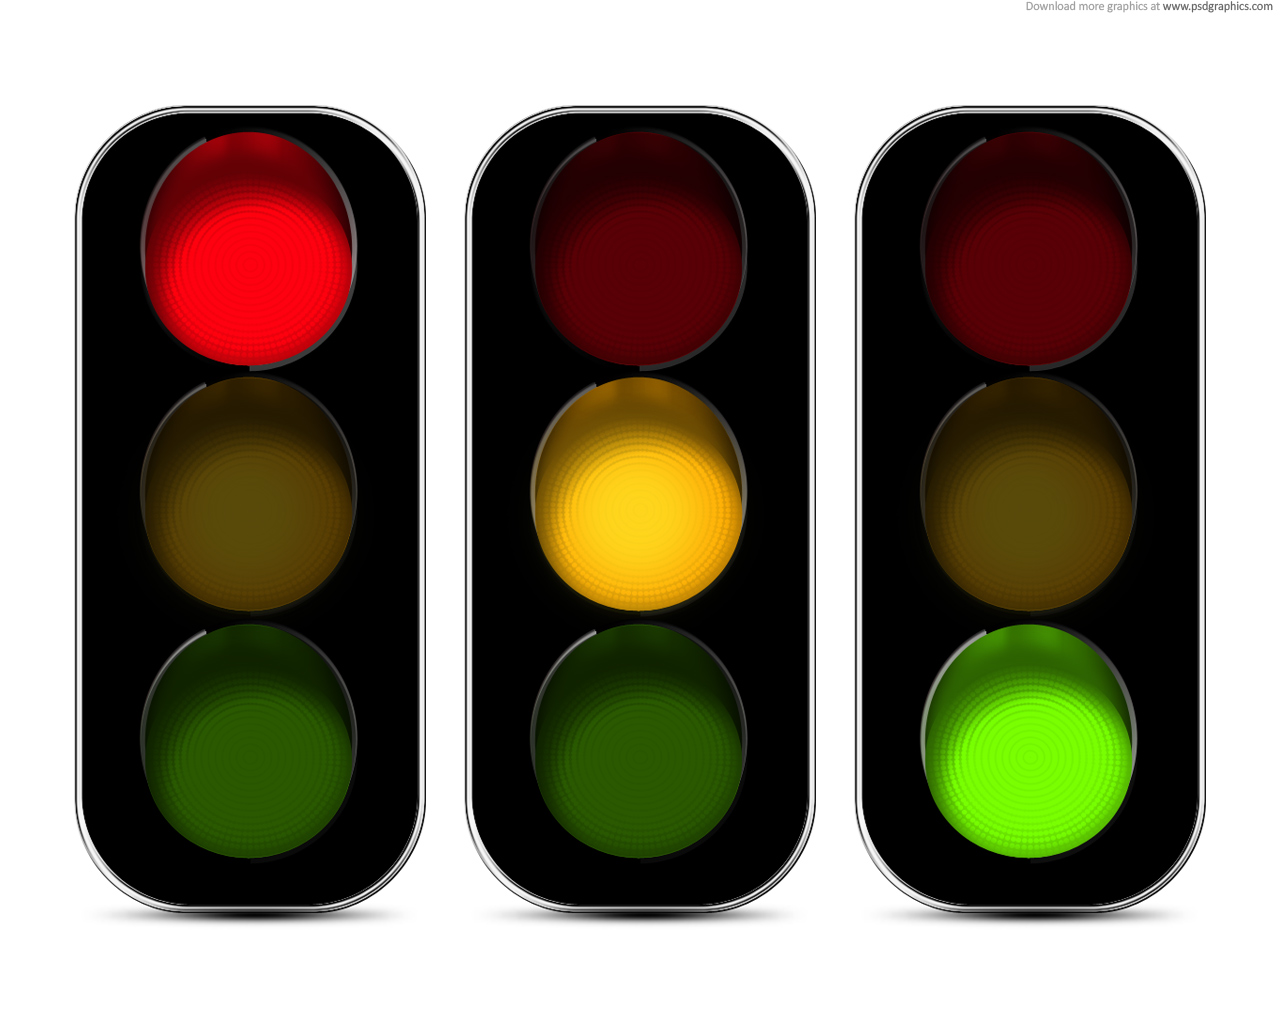 Traffic clipart green light Light Green Green Light Light/